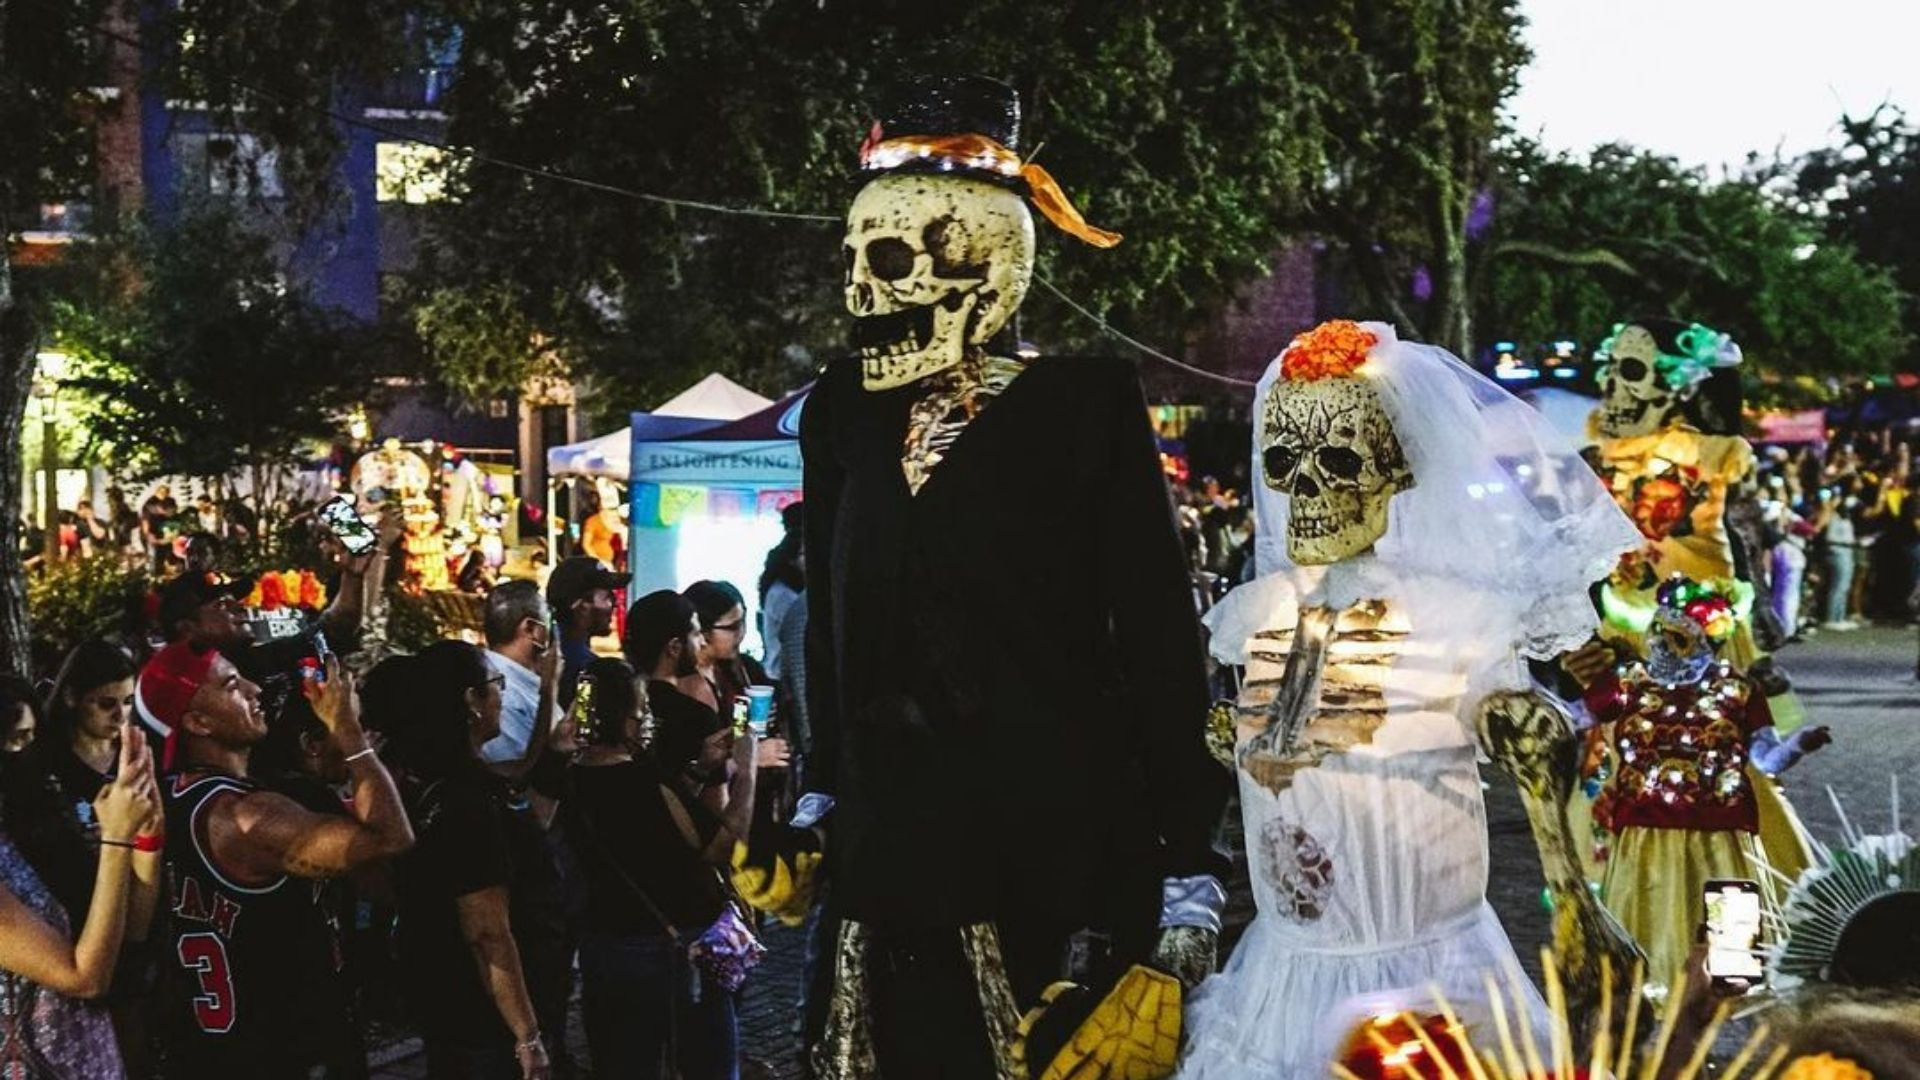 Pictured is a parade of 10-foot-tall skeleton puppets in a procession down a lined-up crowd.